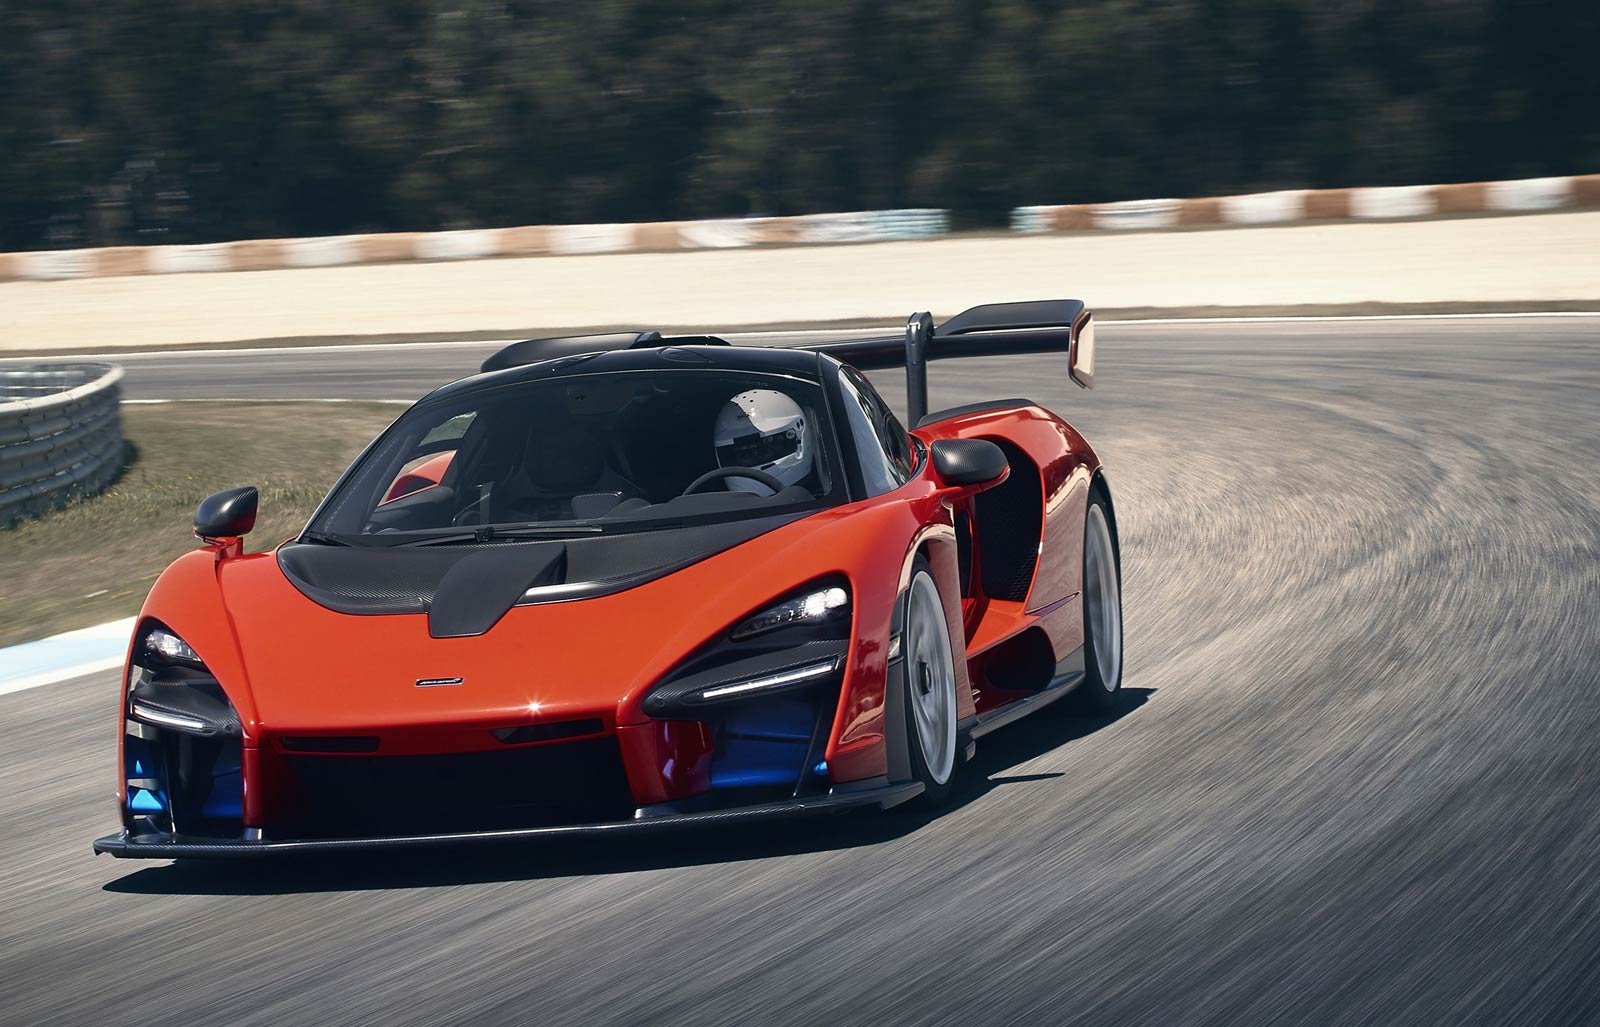 The 16 Best Street Legal Cars that Can Do Over 200 MPH